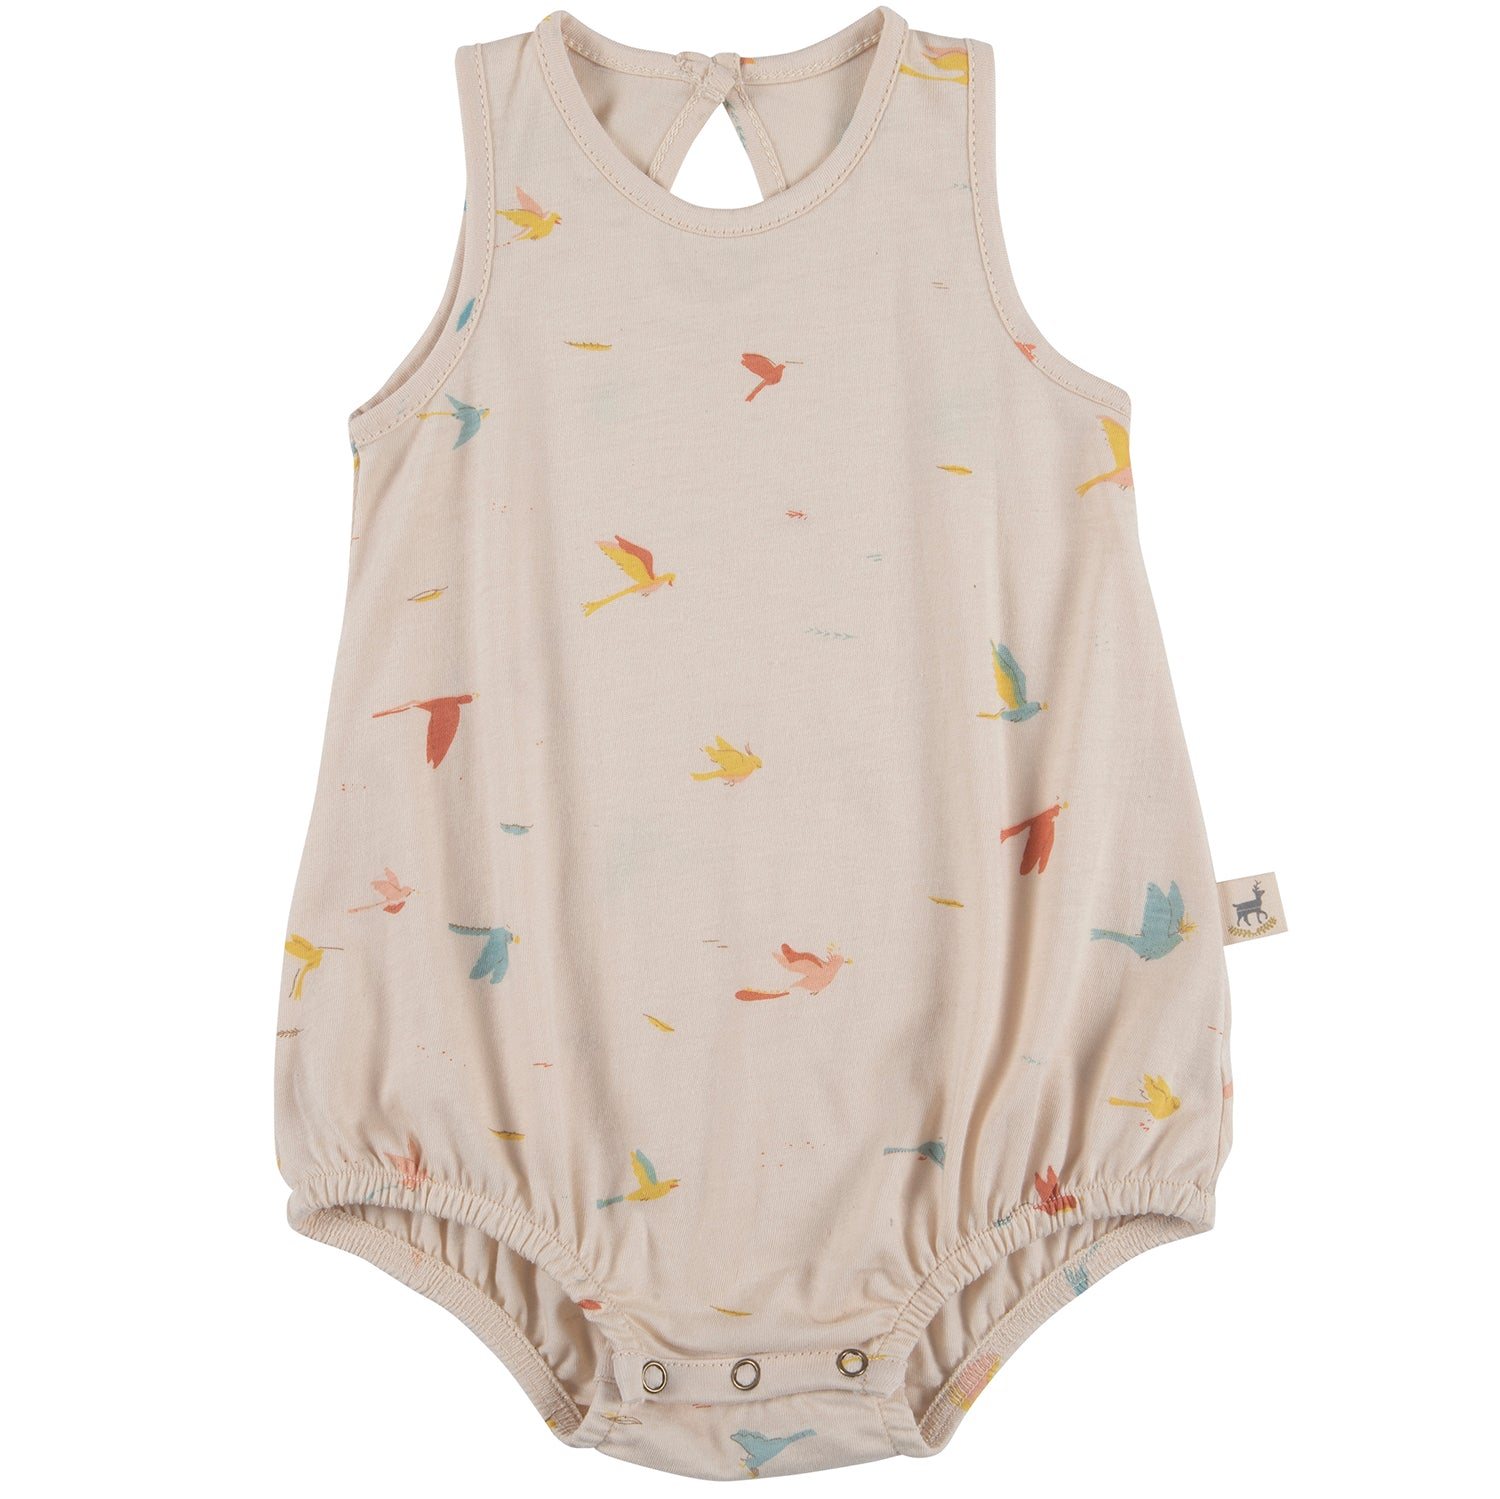 yoya, kids, baby, boys, girls, red caribou, summer, casual, lounge, graphic printed, sleeveless, tank top, baggy onesie